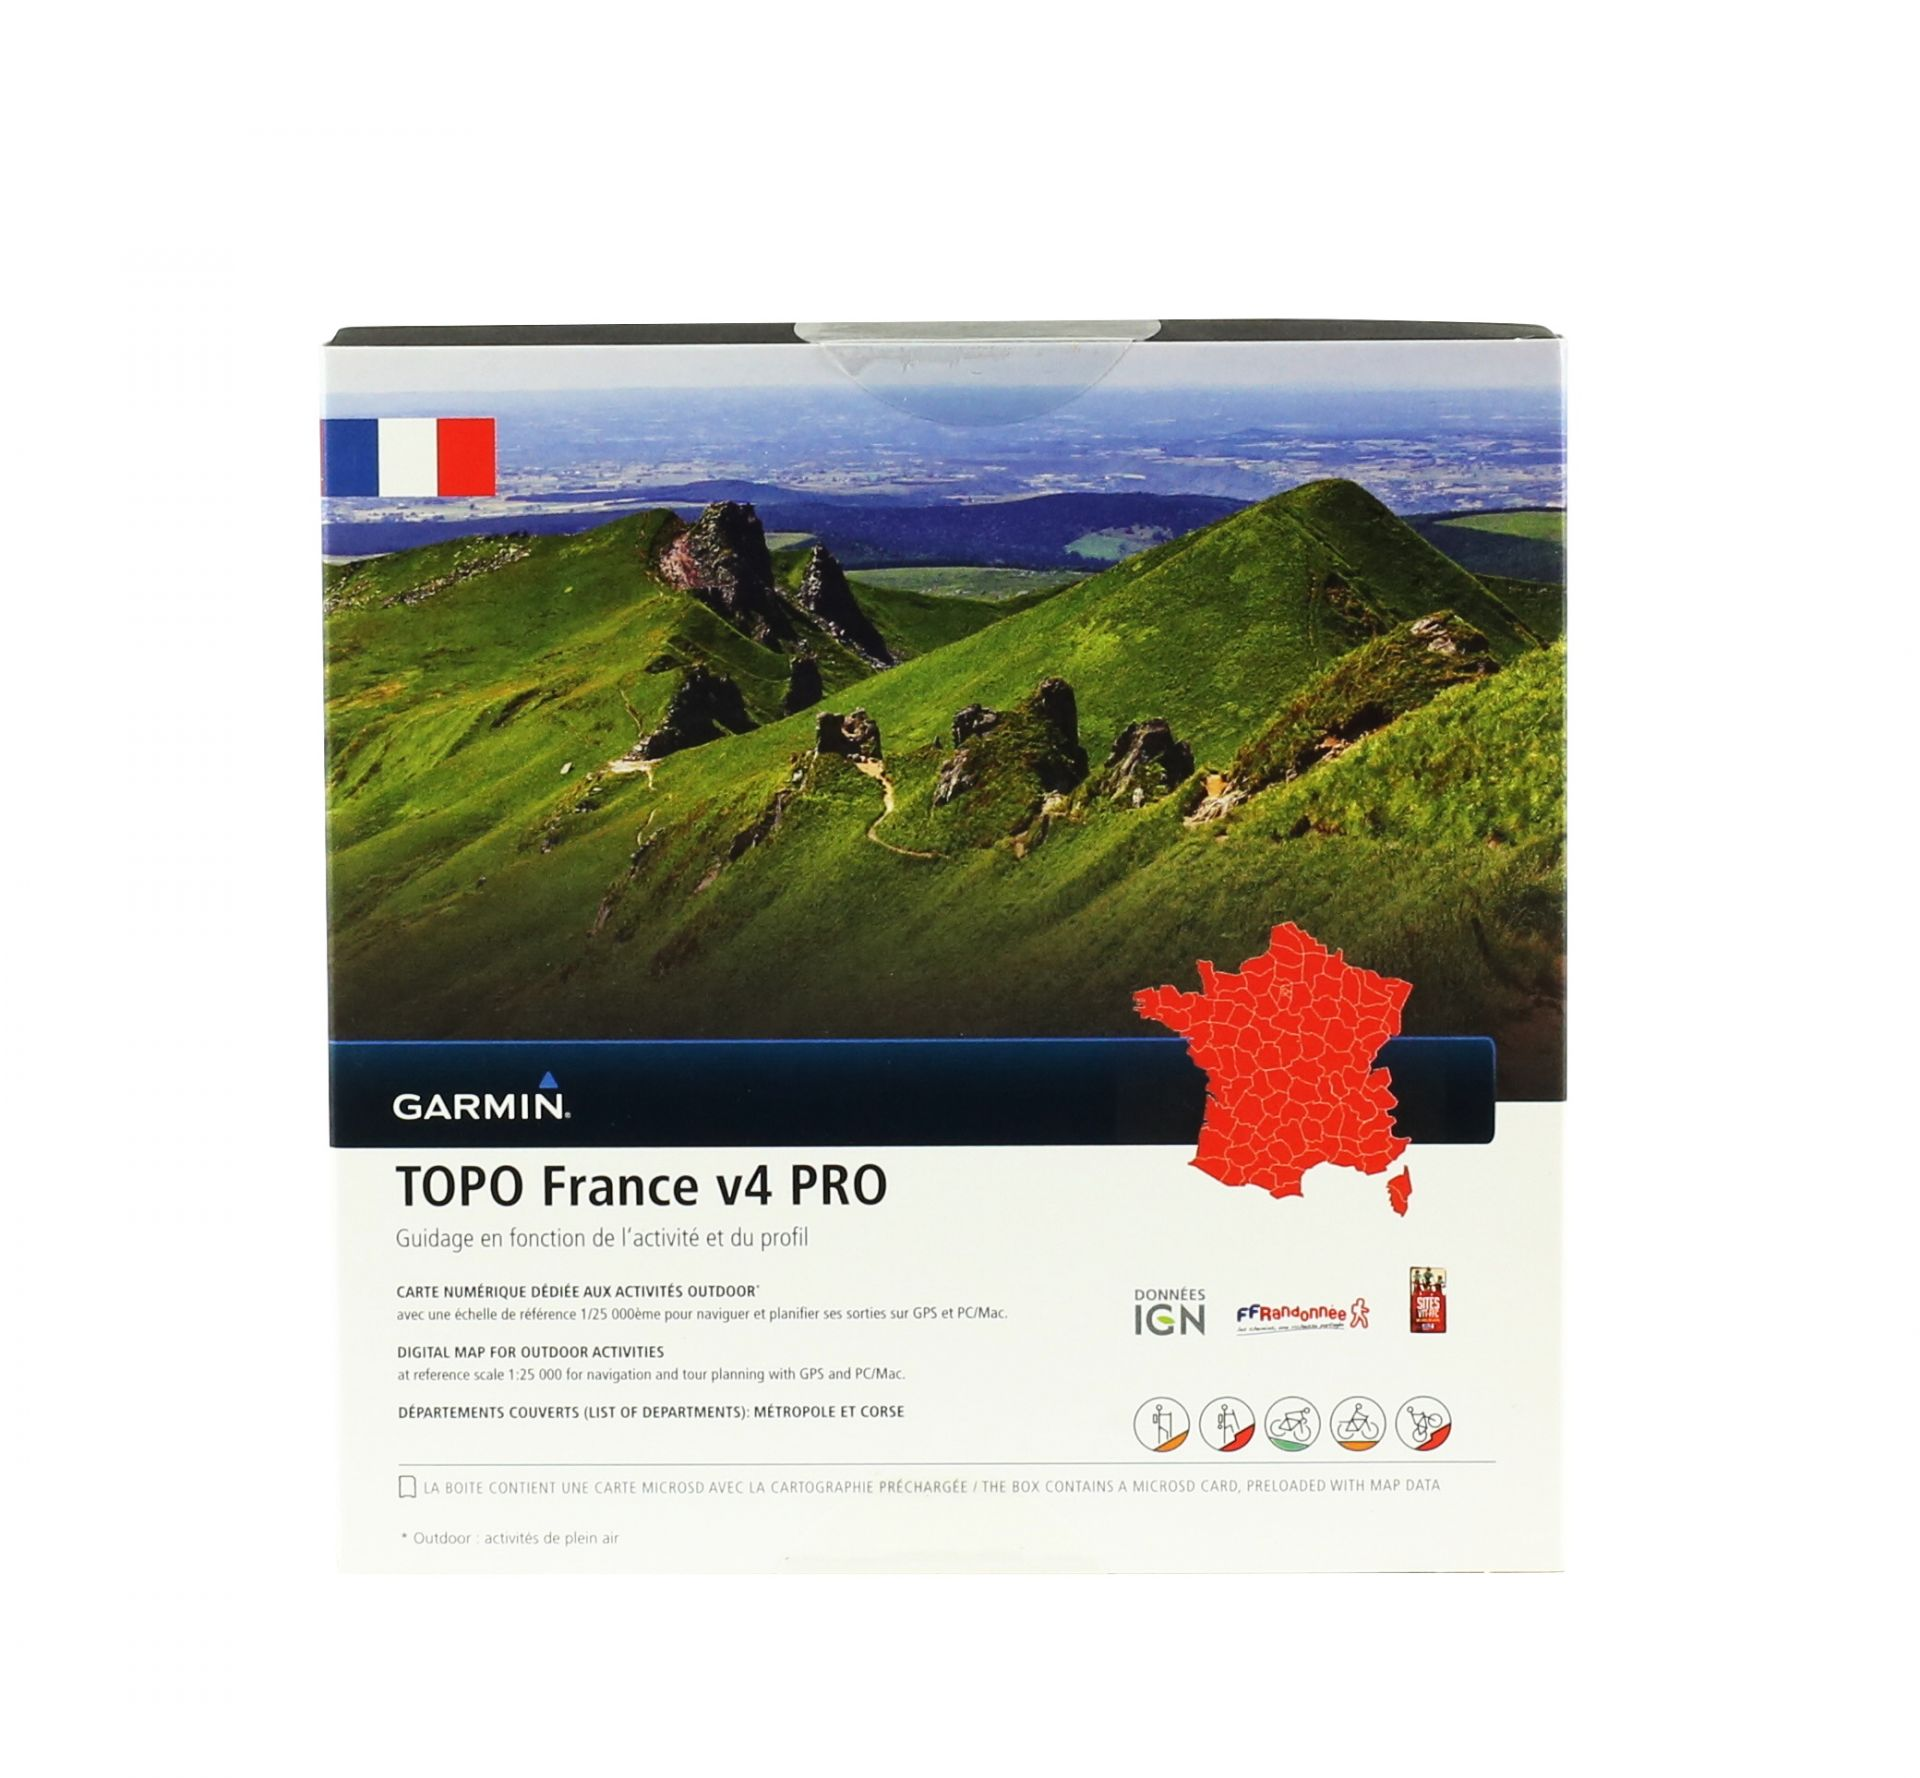 Cartographie Garmin IGN Topo France v4 Pro (France entière)